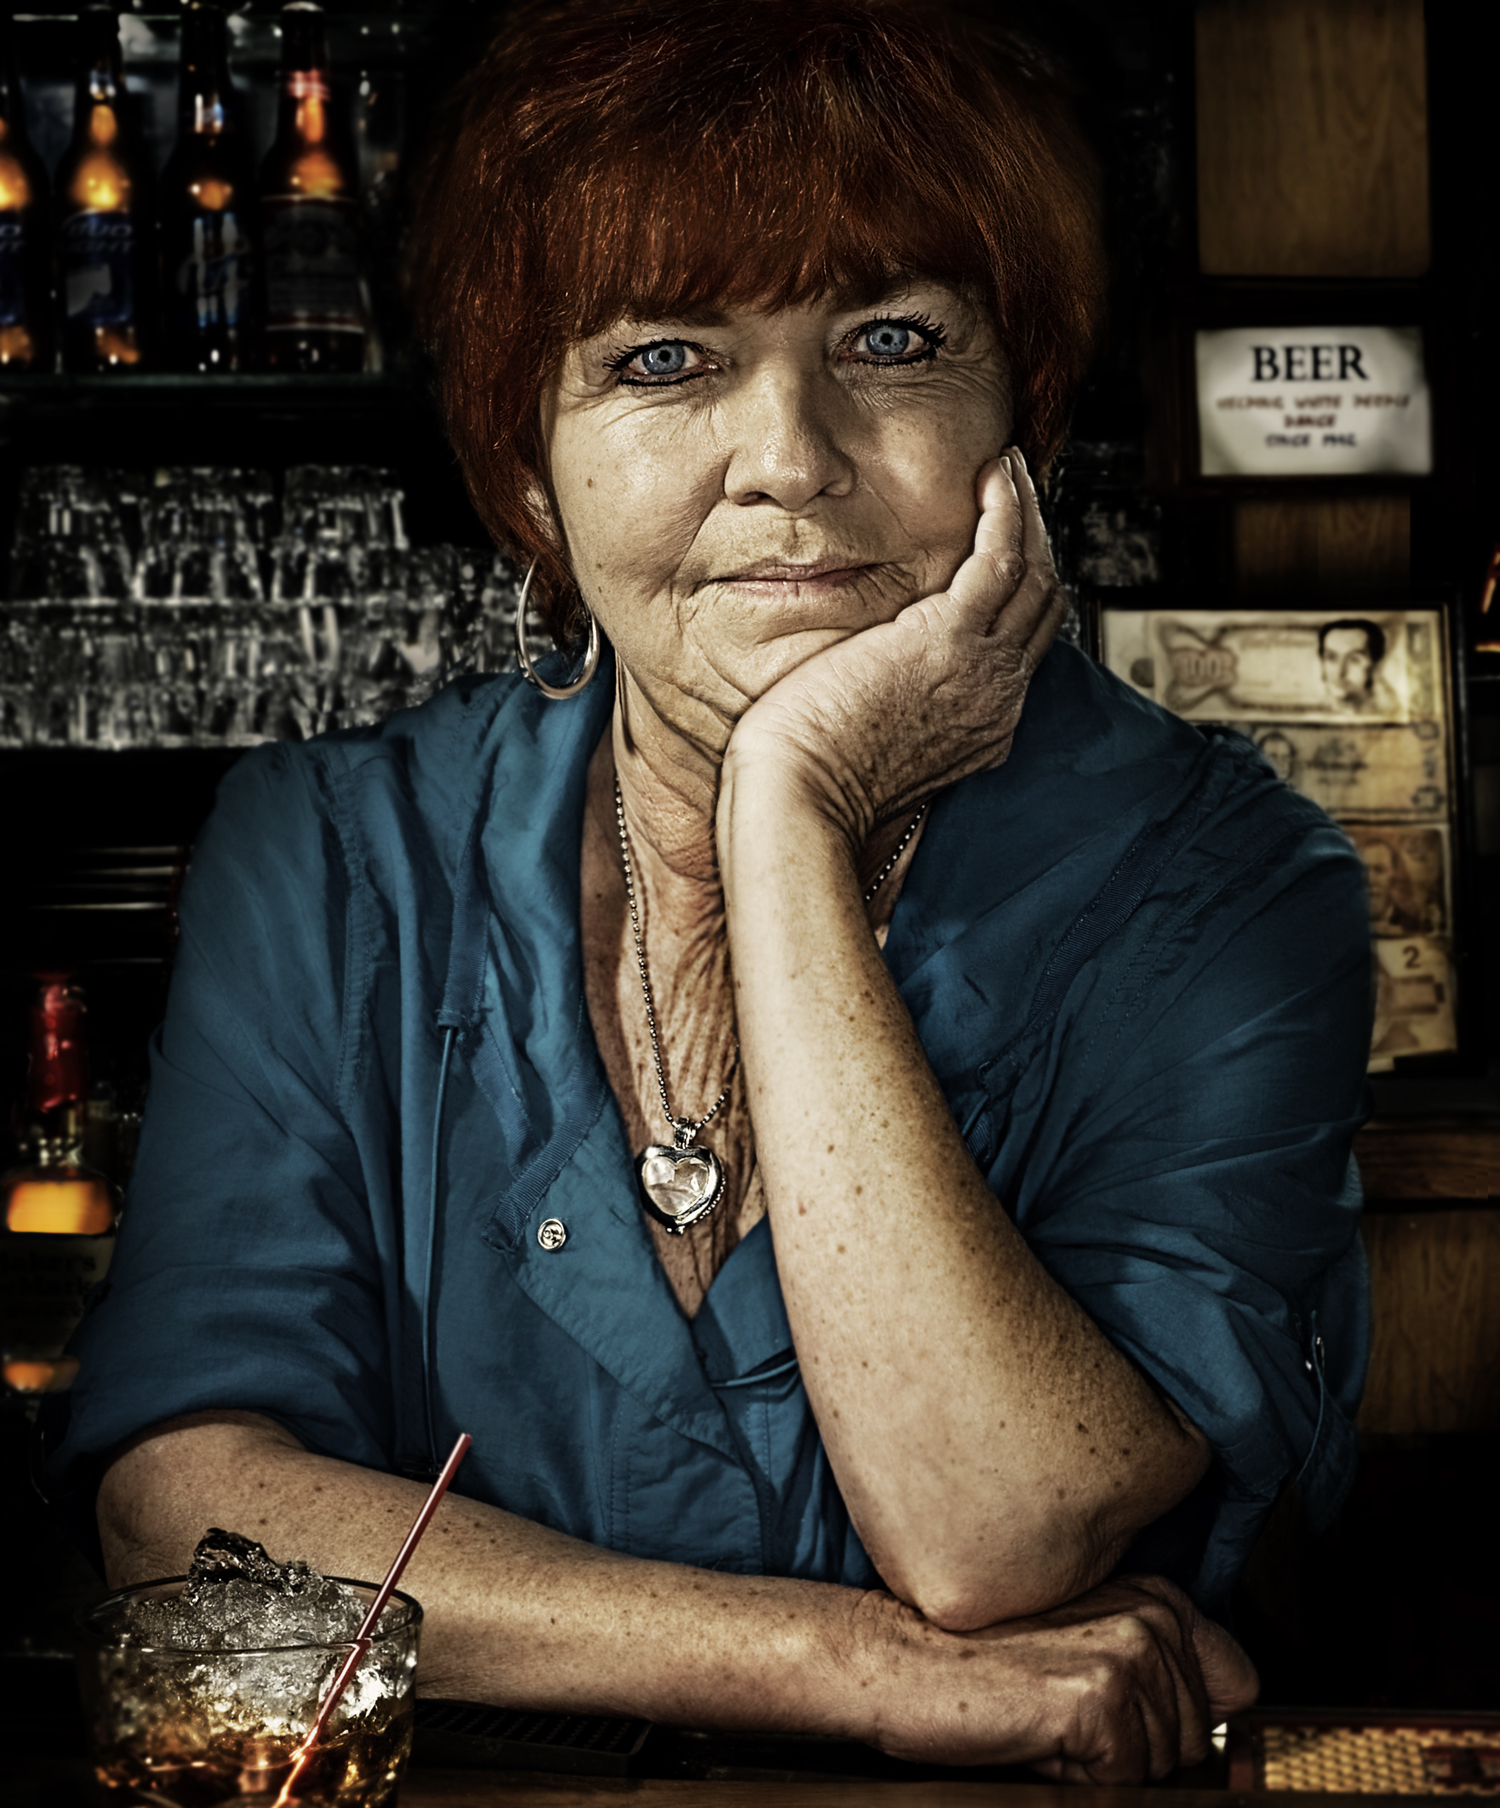 Barmaid of 'The Secret Keepers' series